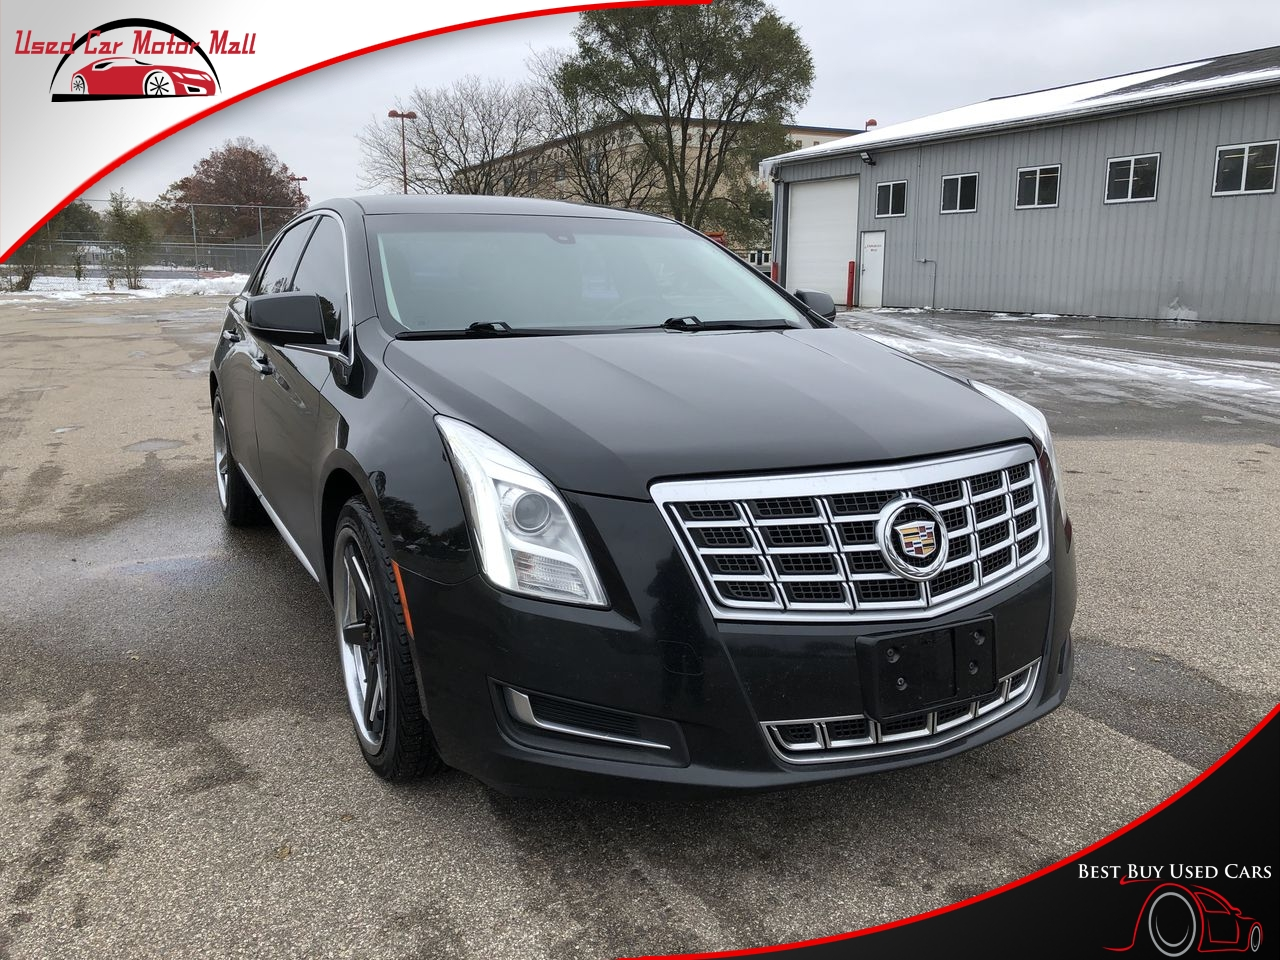 2016 Cadillac XTS Pro Livery FWD, 166544, Photo 1